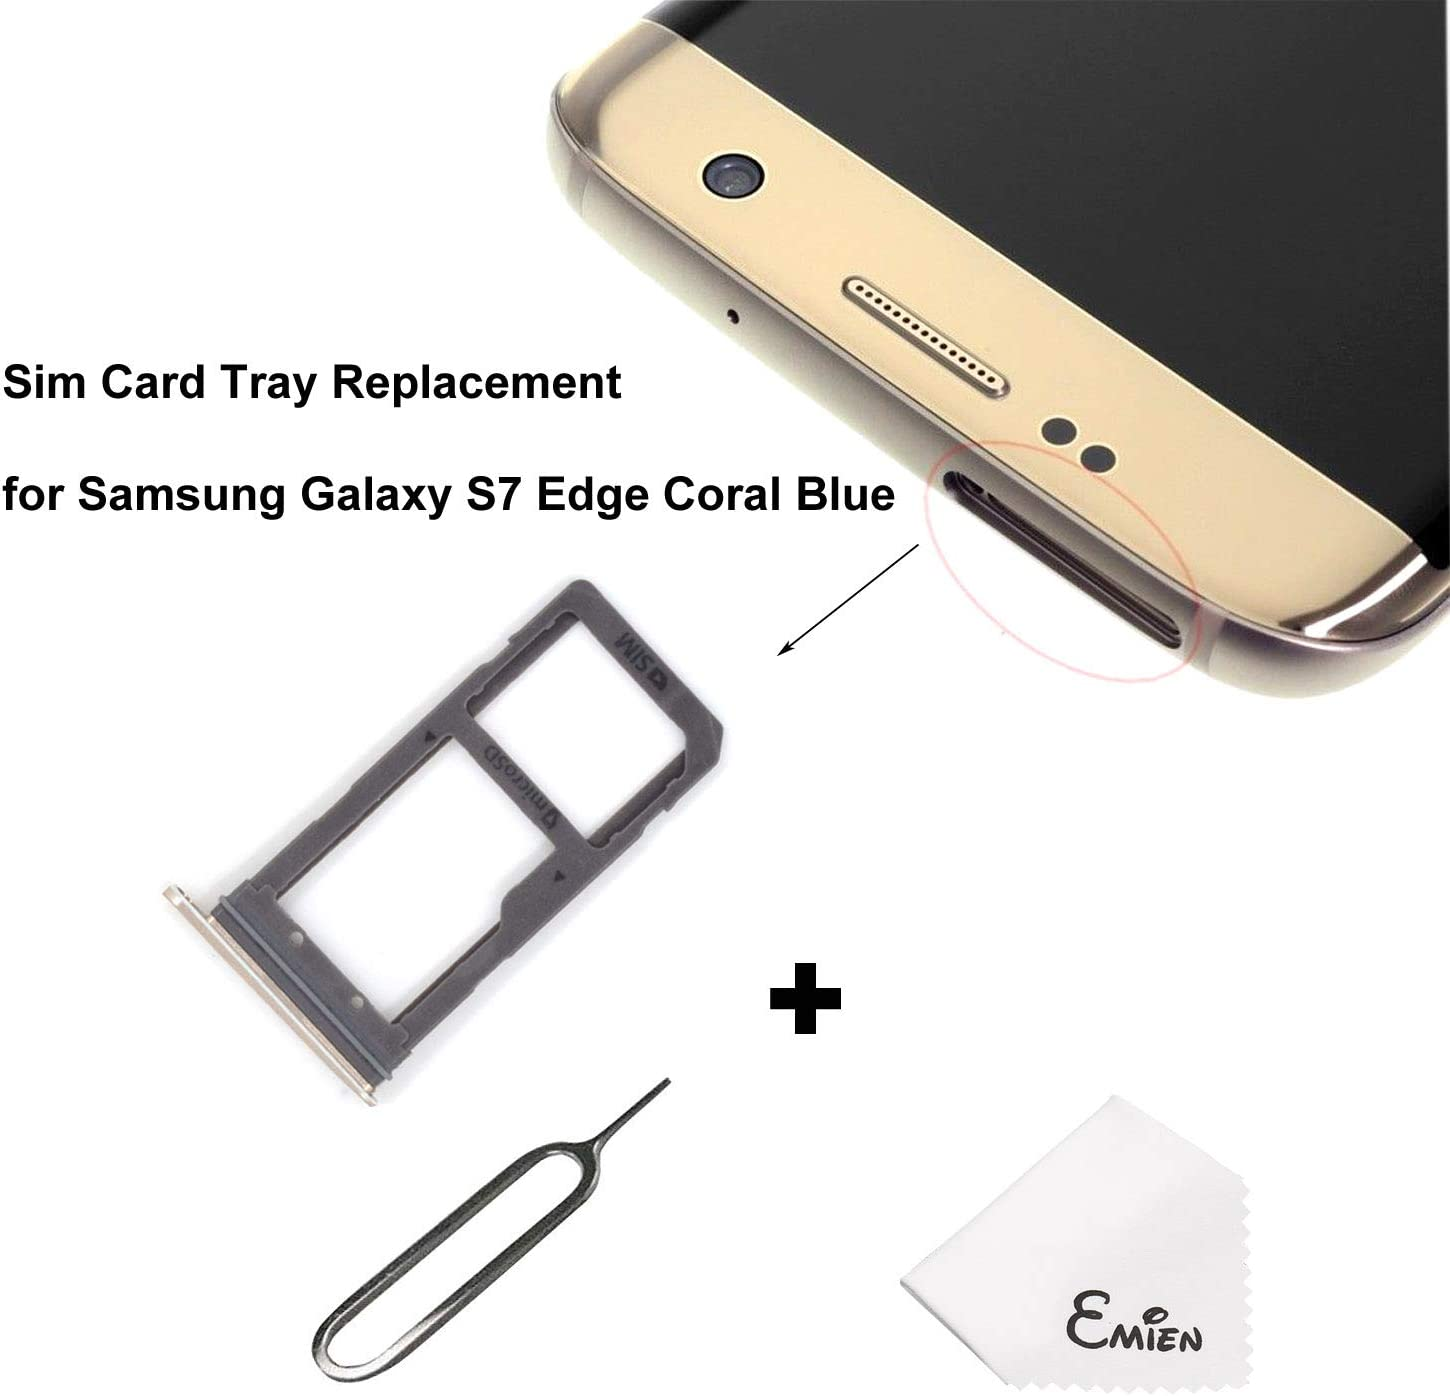 EMiEN Single SIM Card Tray Slot Holder Replacement for Samsung Galaxy S7 Edge G935 + SIM Card Tray Open Eject Pin (Coral Blue)